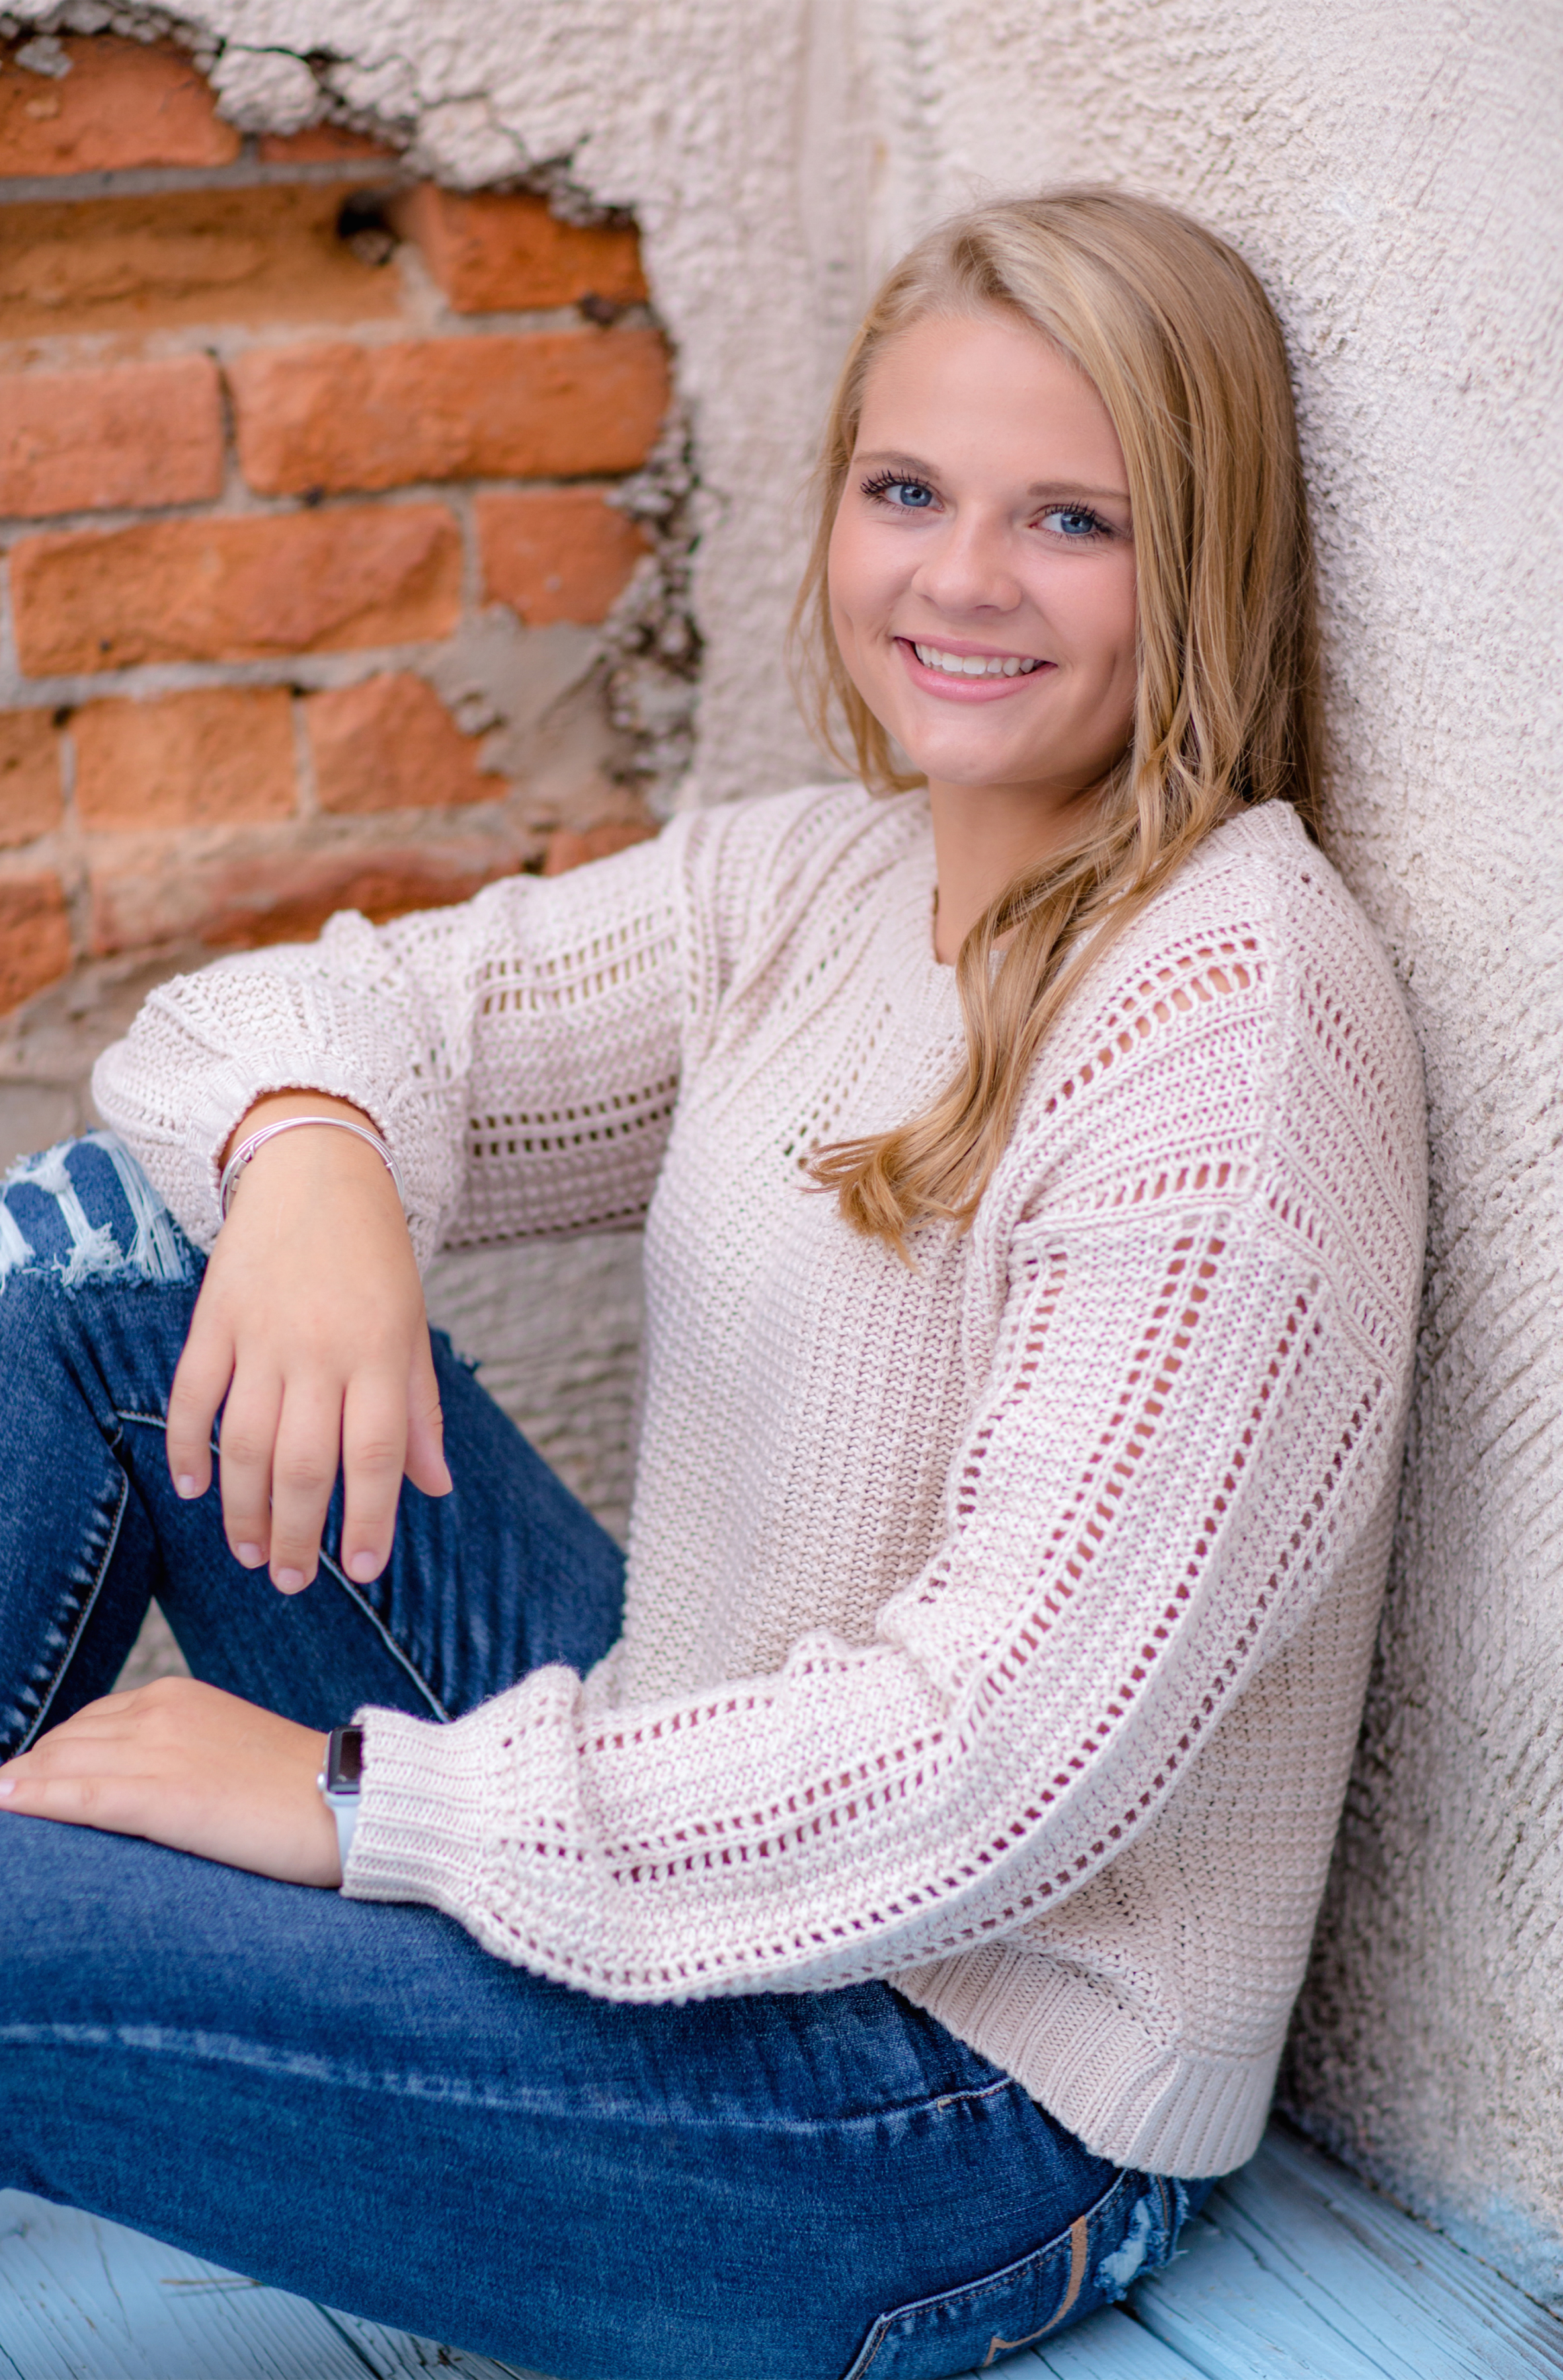 Alexis_Scalise_Senior_09.jpg